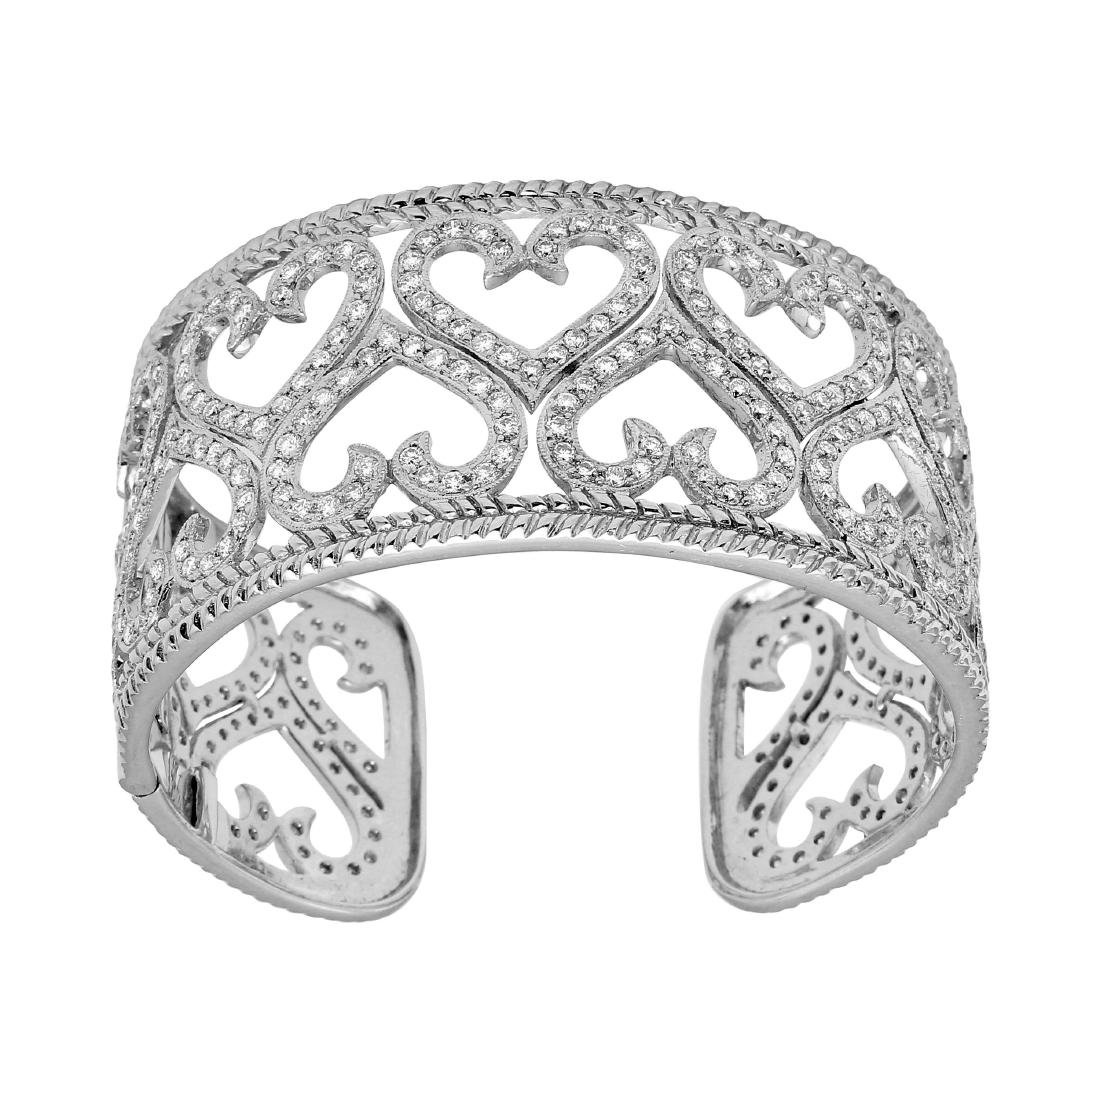 18KT White Diamond Heart Cuff Bracelet